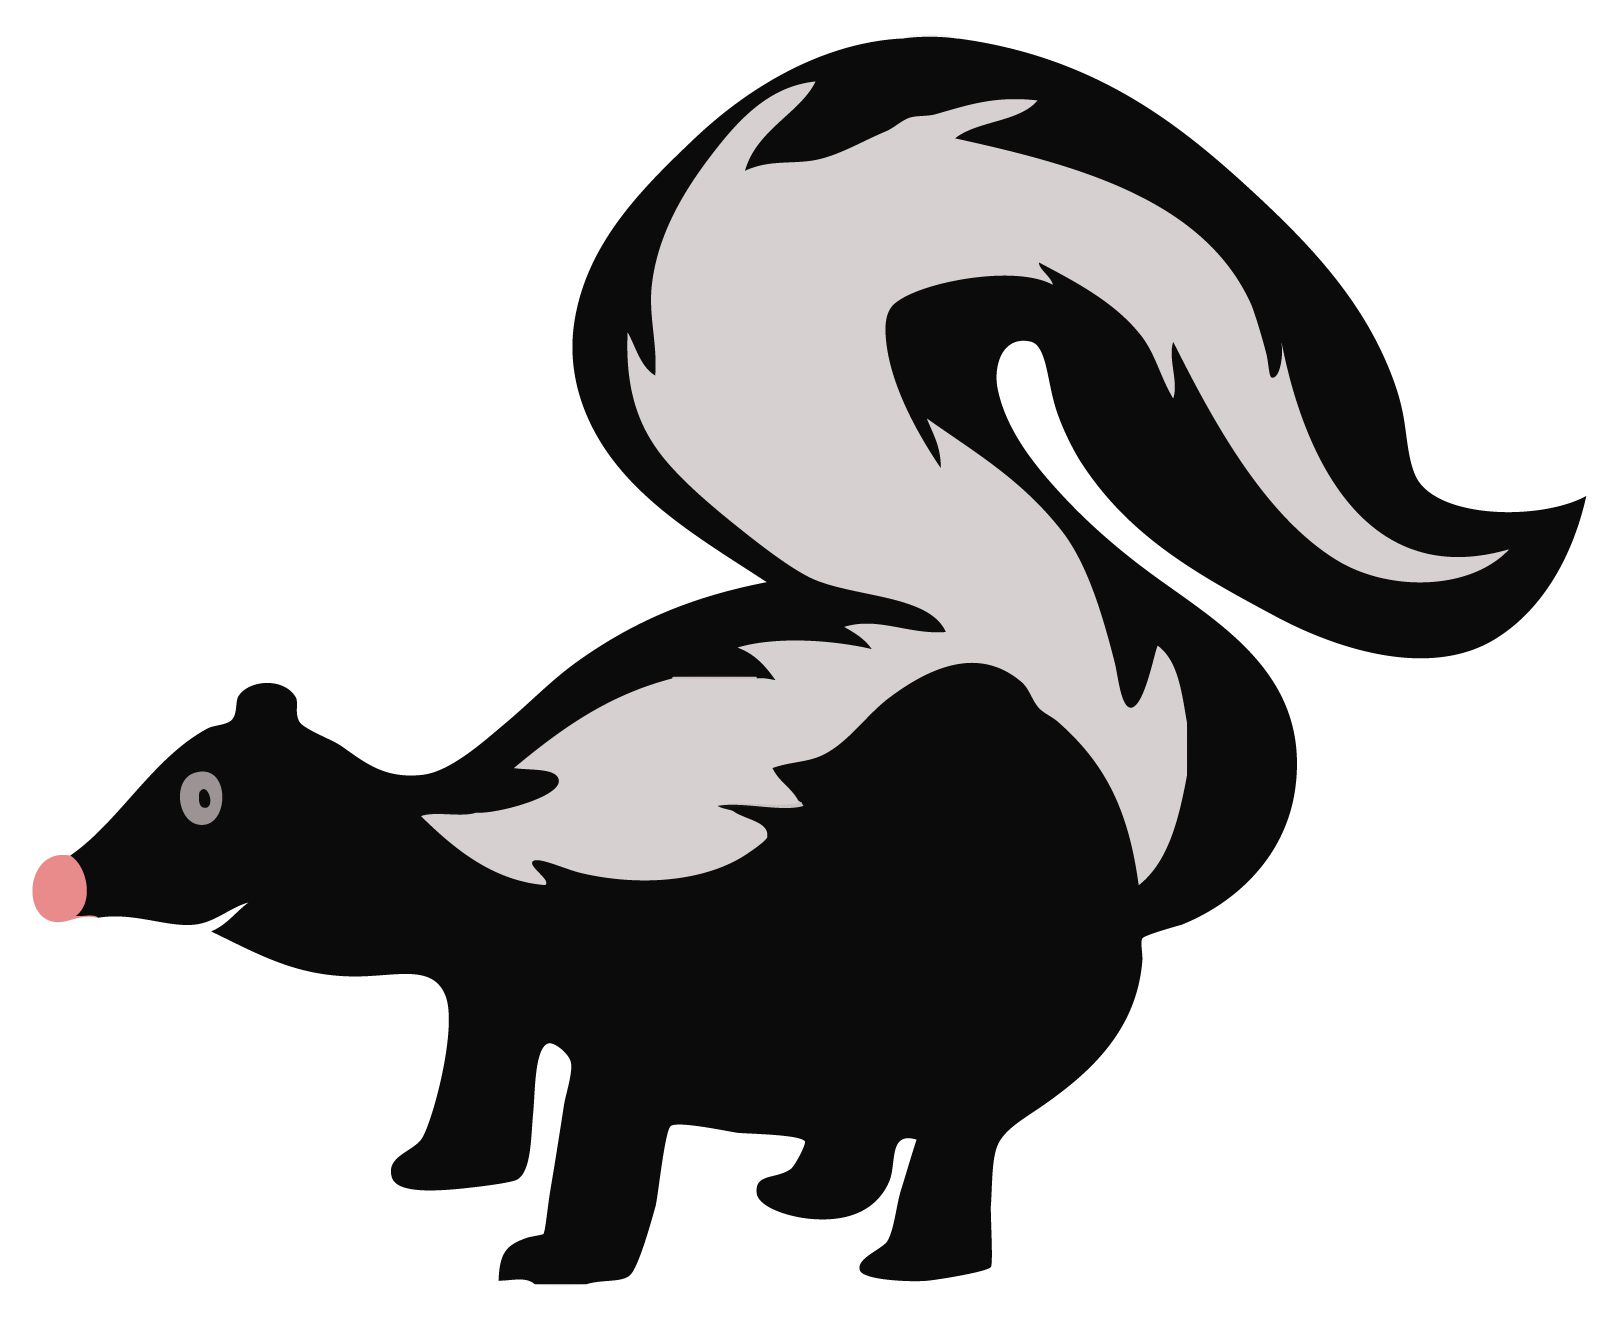 Clipart skunk graphic library download Free Skunk Cliparts, Download Free Clip Art, Free Clip Art on ... graphic library download